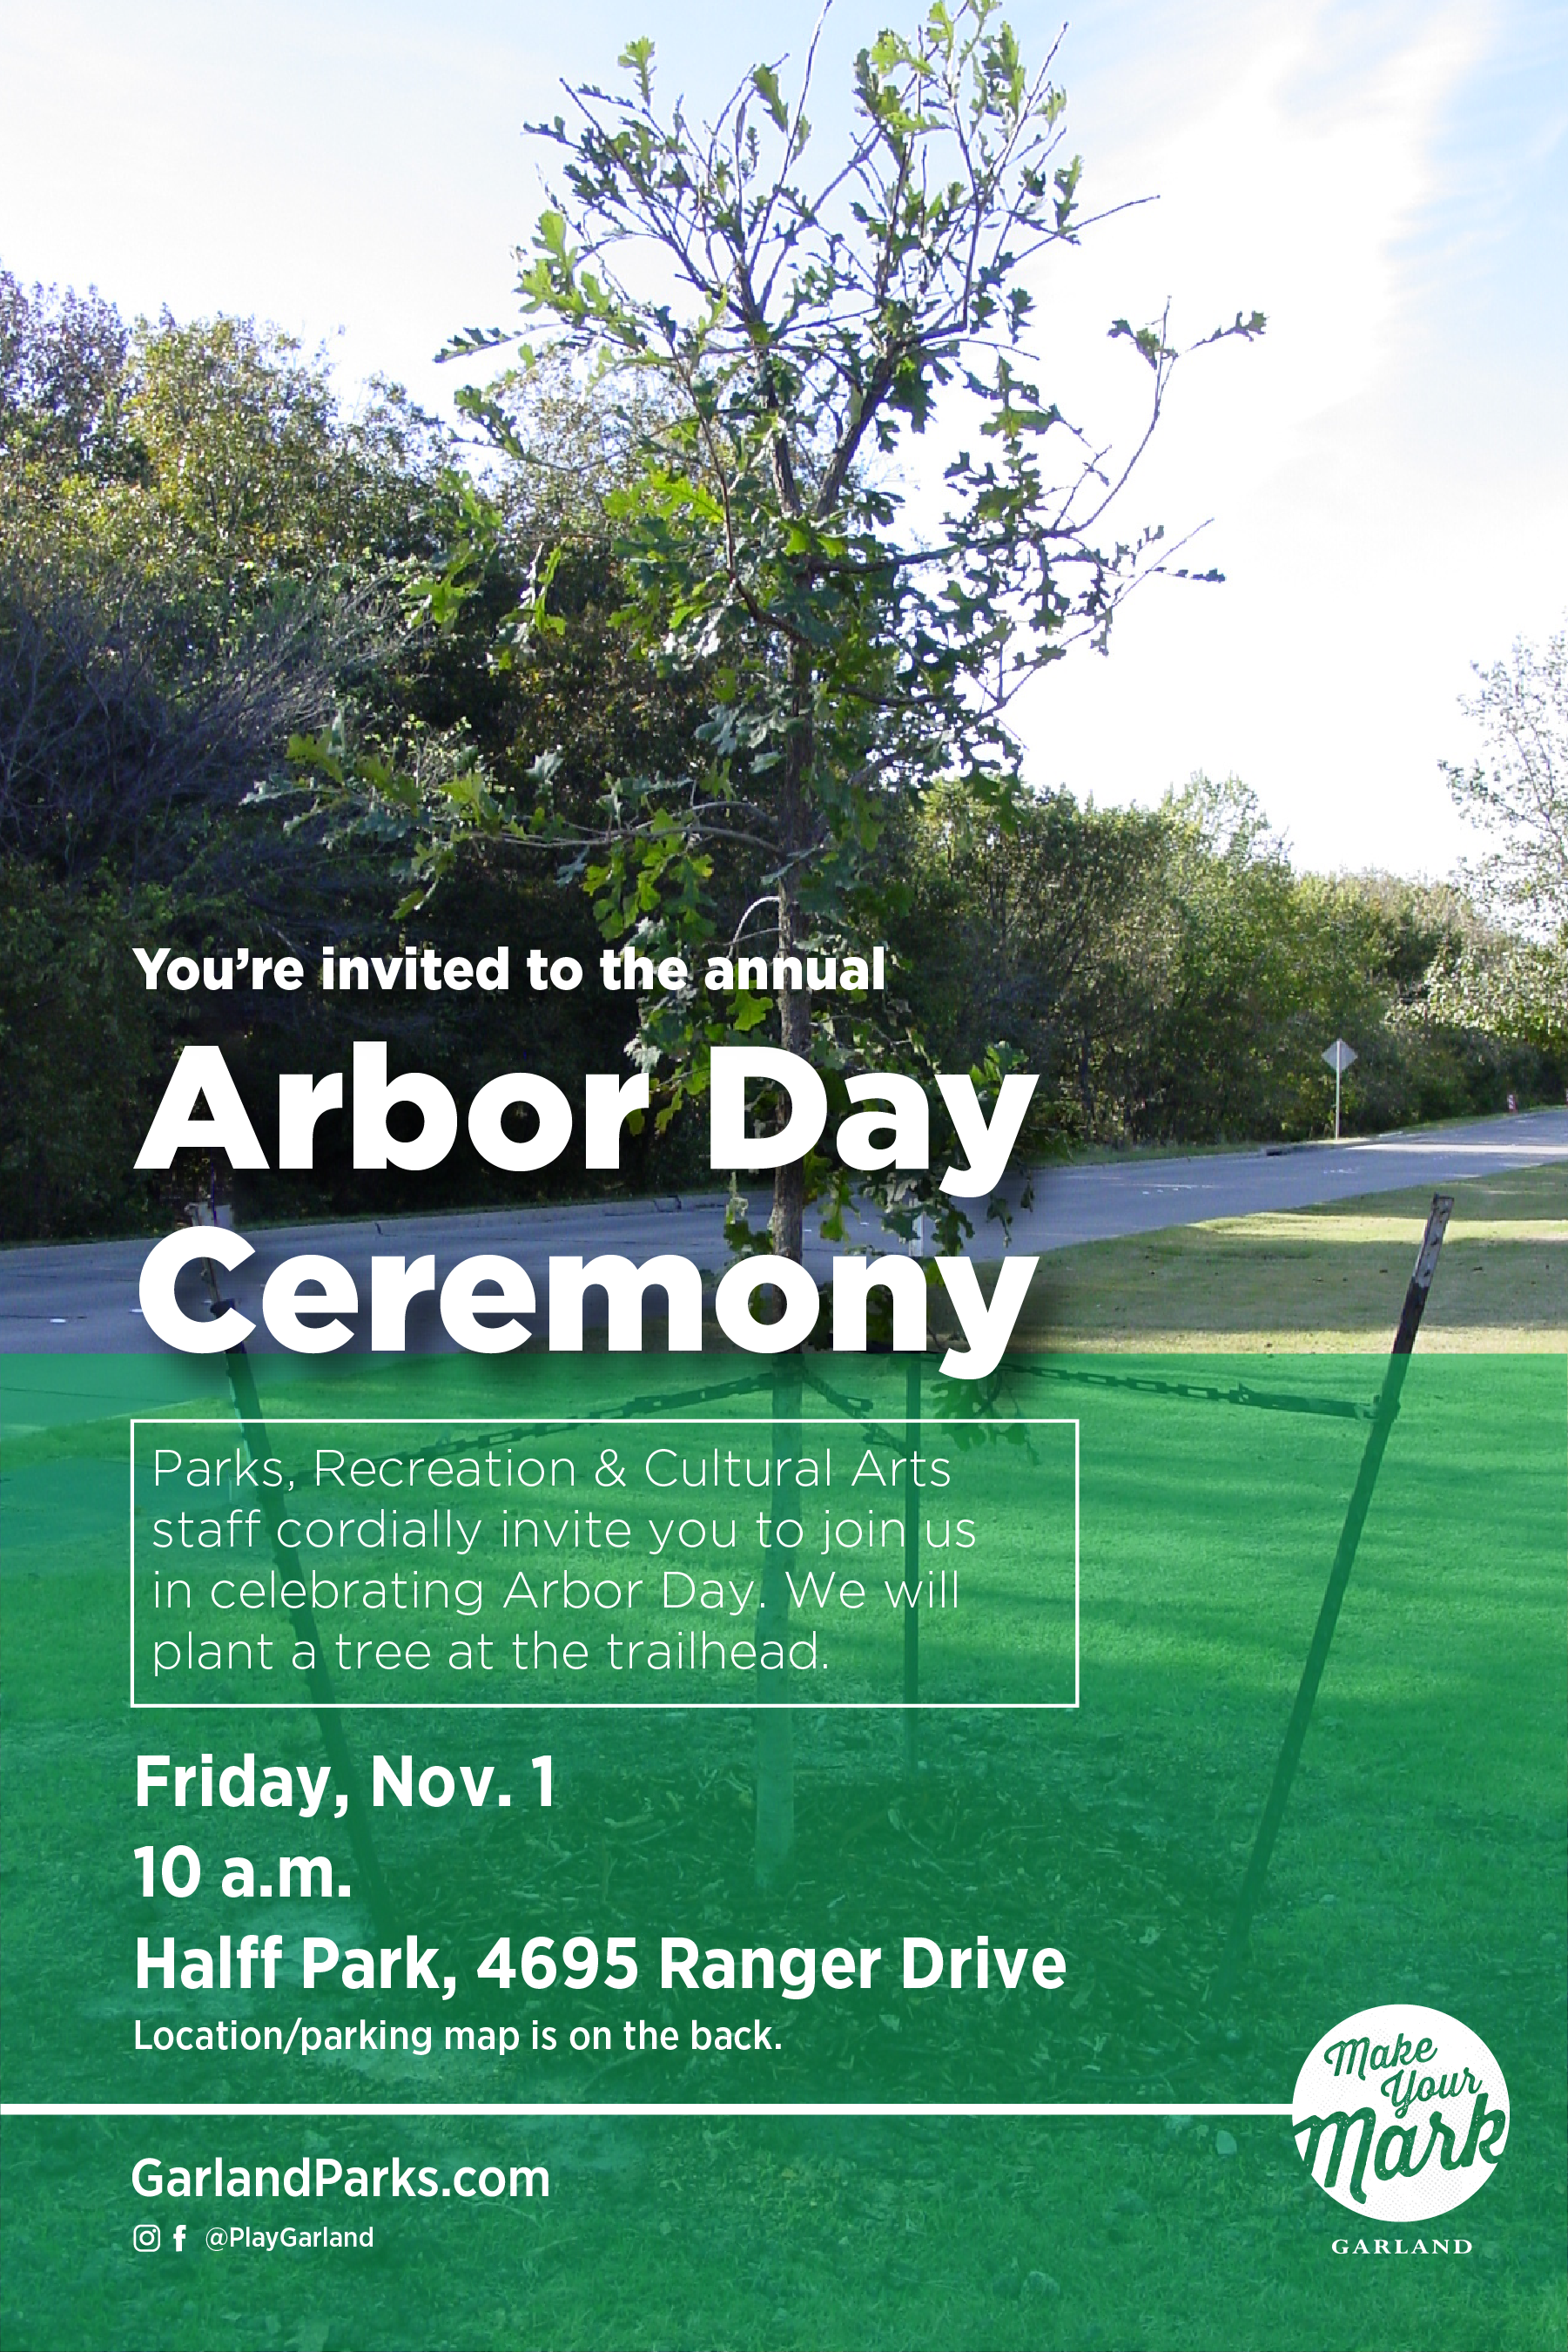 Arbor Day invitation with tree and trail in background